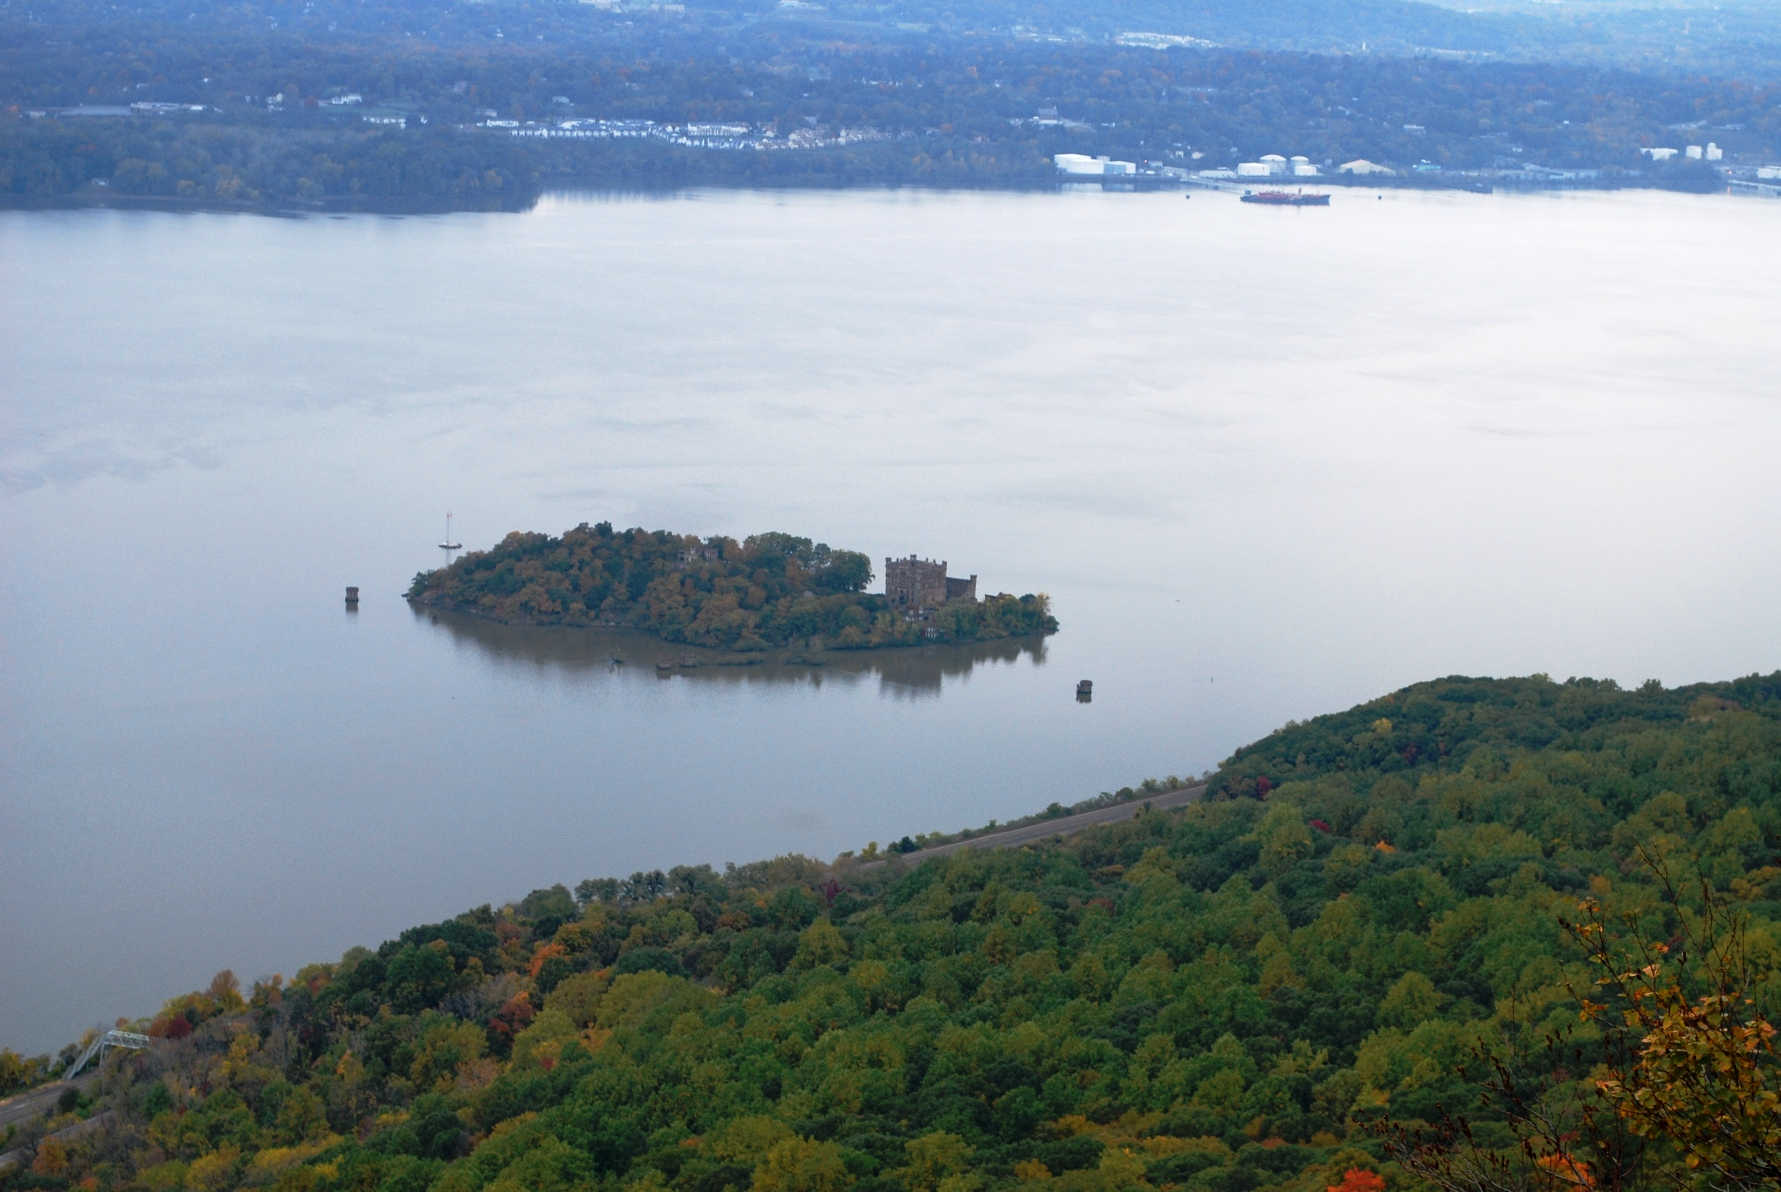 Bannerman_Castle_on_Pollepel_Island_viewed_from_atop_Breakneck_Ridge.JPG